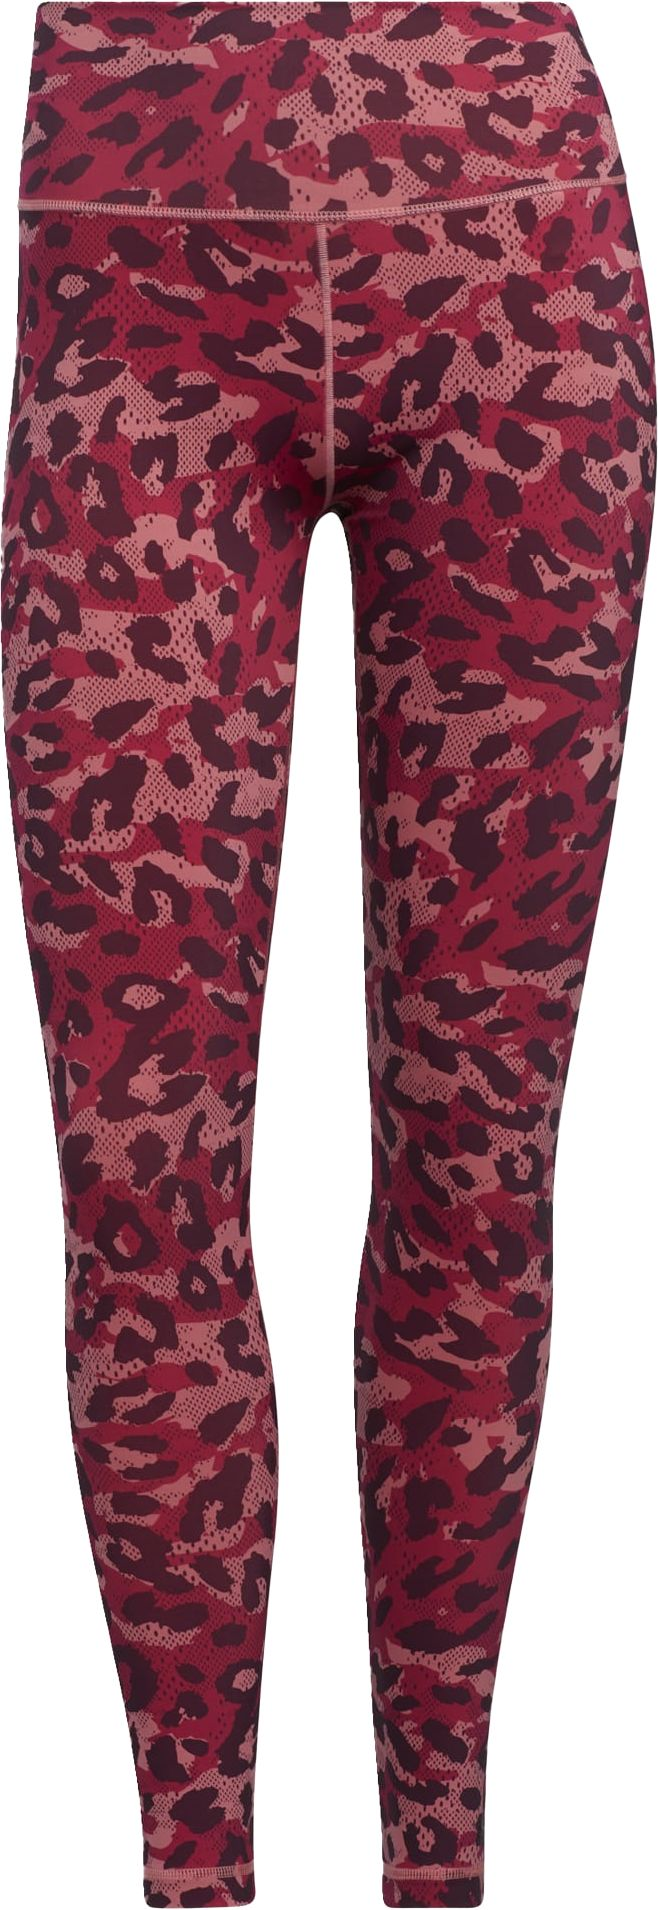 355335101102, Believe This Graphic Long Leggings, ADIDAS, Detail